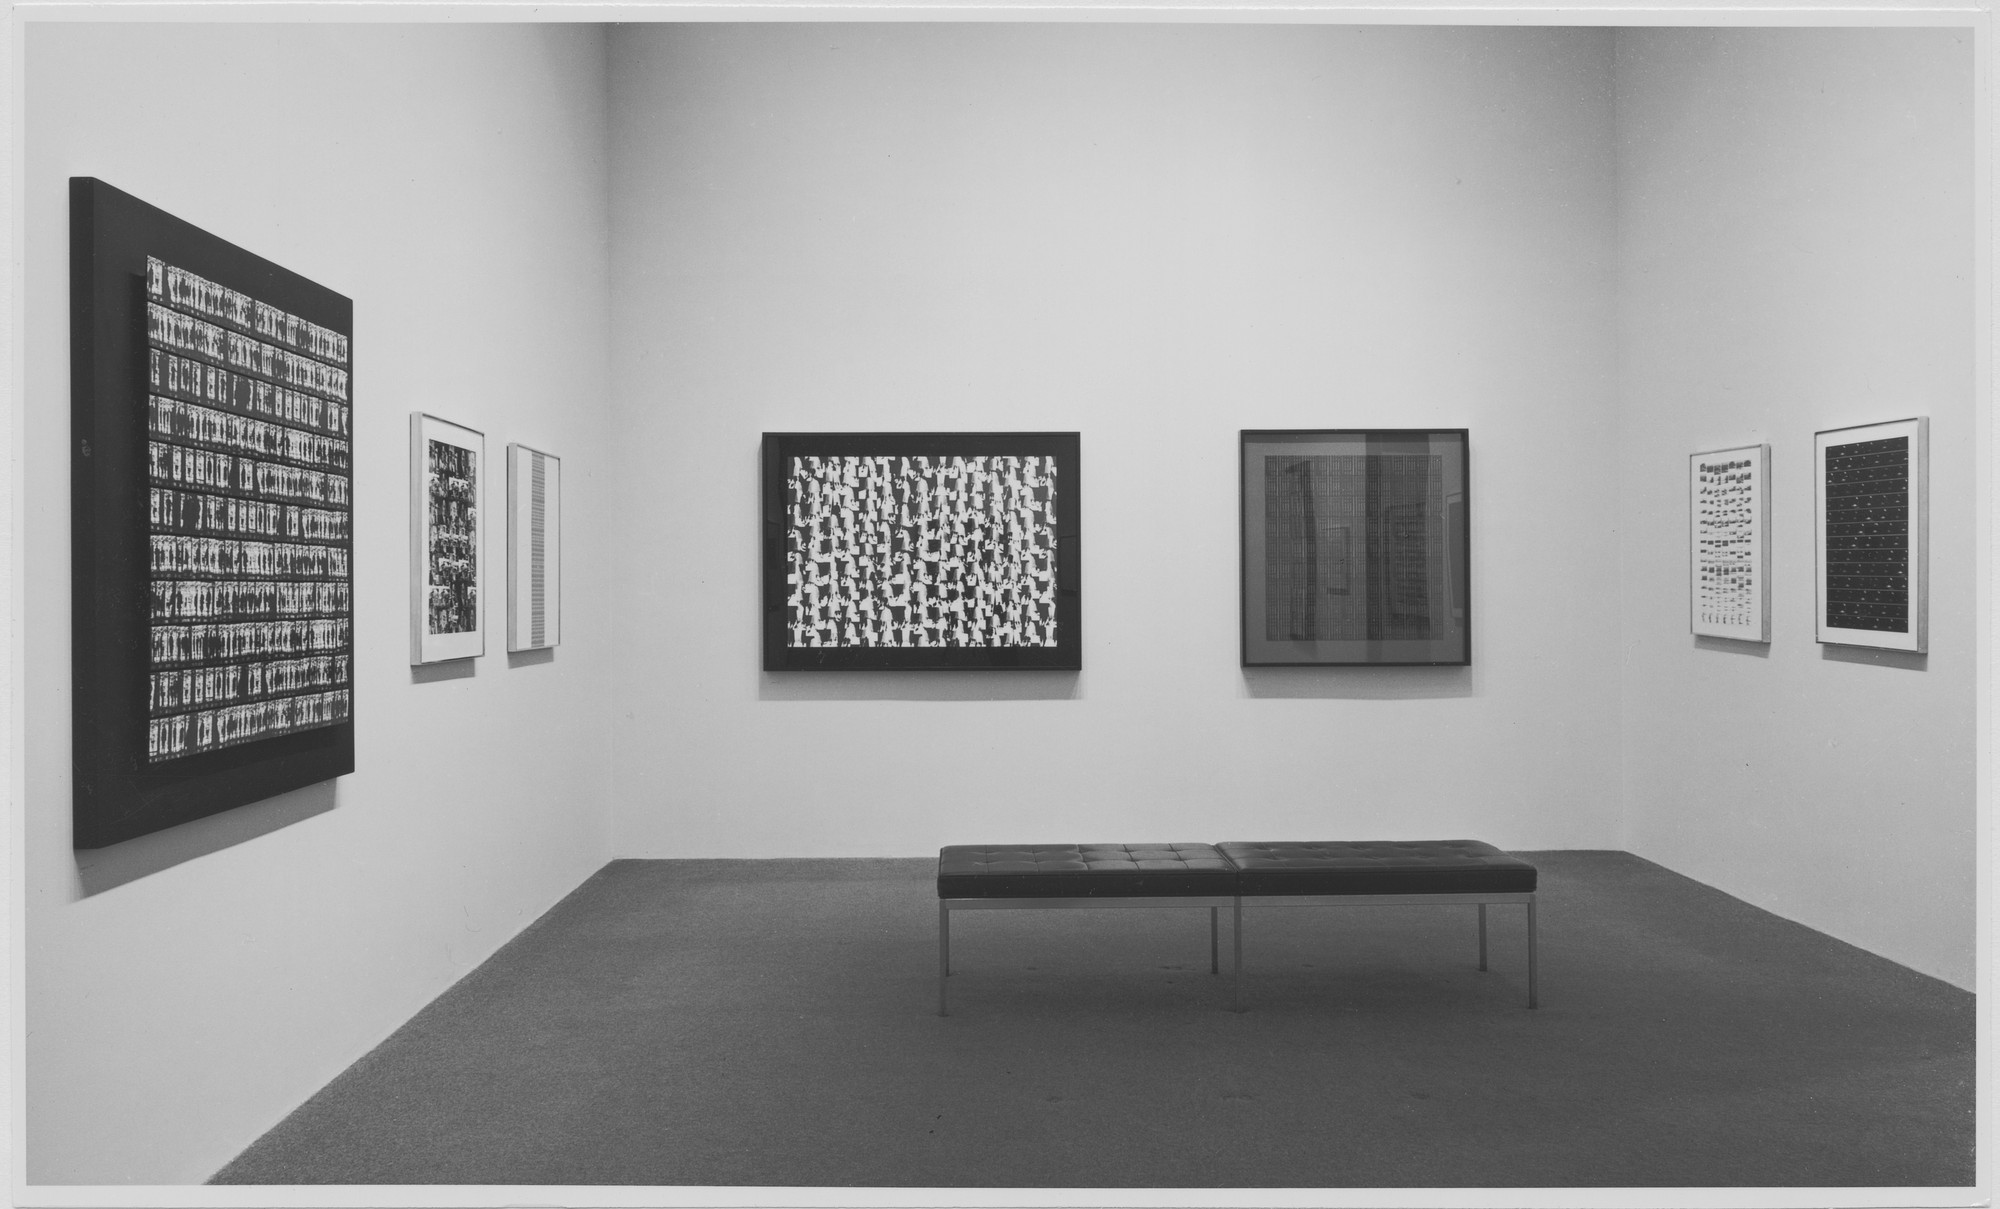 "Installation view of the exhibition, ""Ray K. Metzker"" October 25, 1967–January 31, 1968. Photographic Archive. The Museum of Modern Art Archives, New York. IN844.1. Photograph by James Mathews."